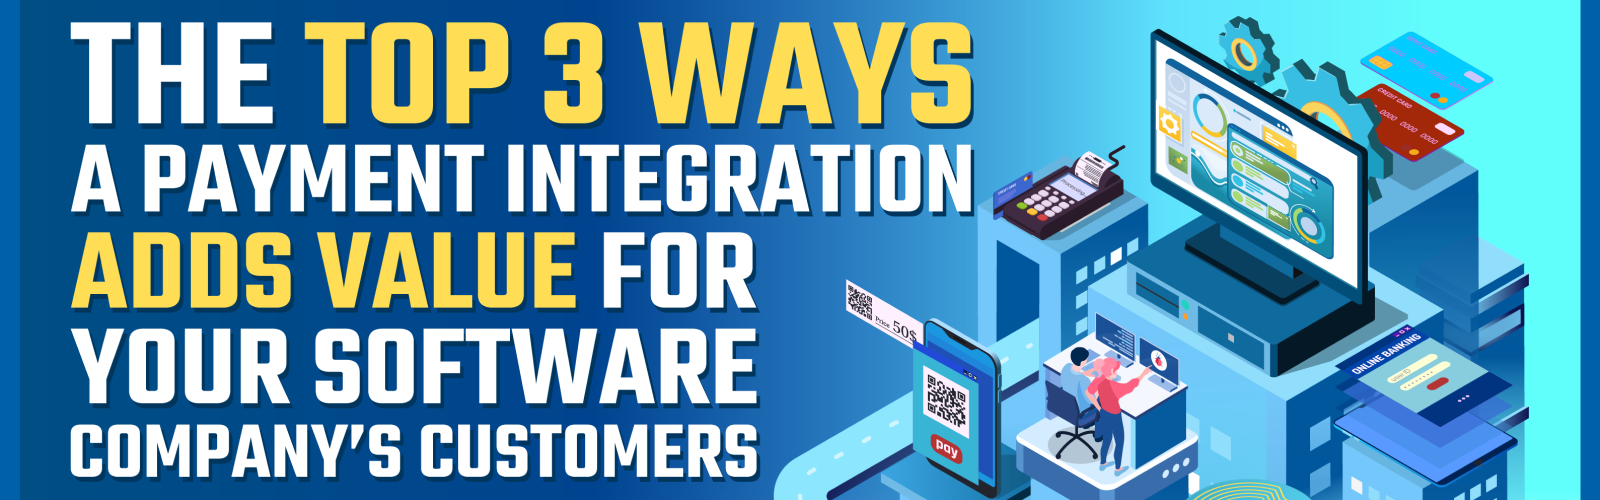 Top 3 Ways a Payment Integration Adds Value for Your Software Company-Banner